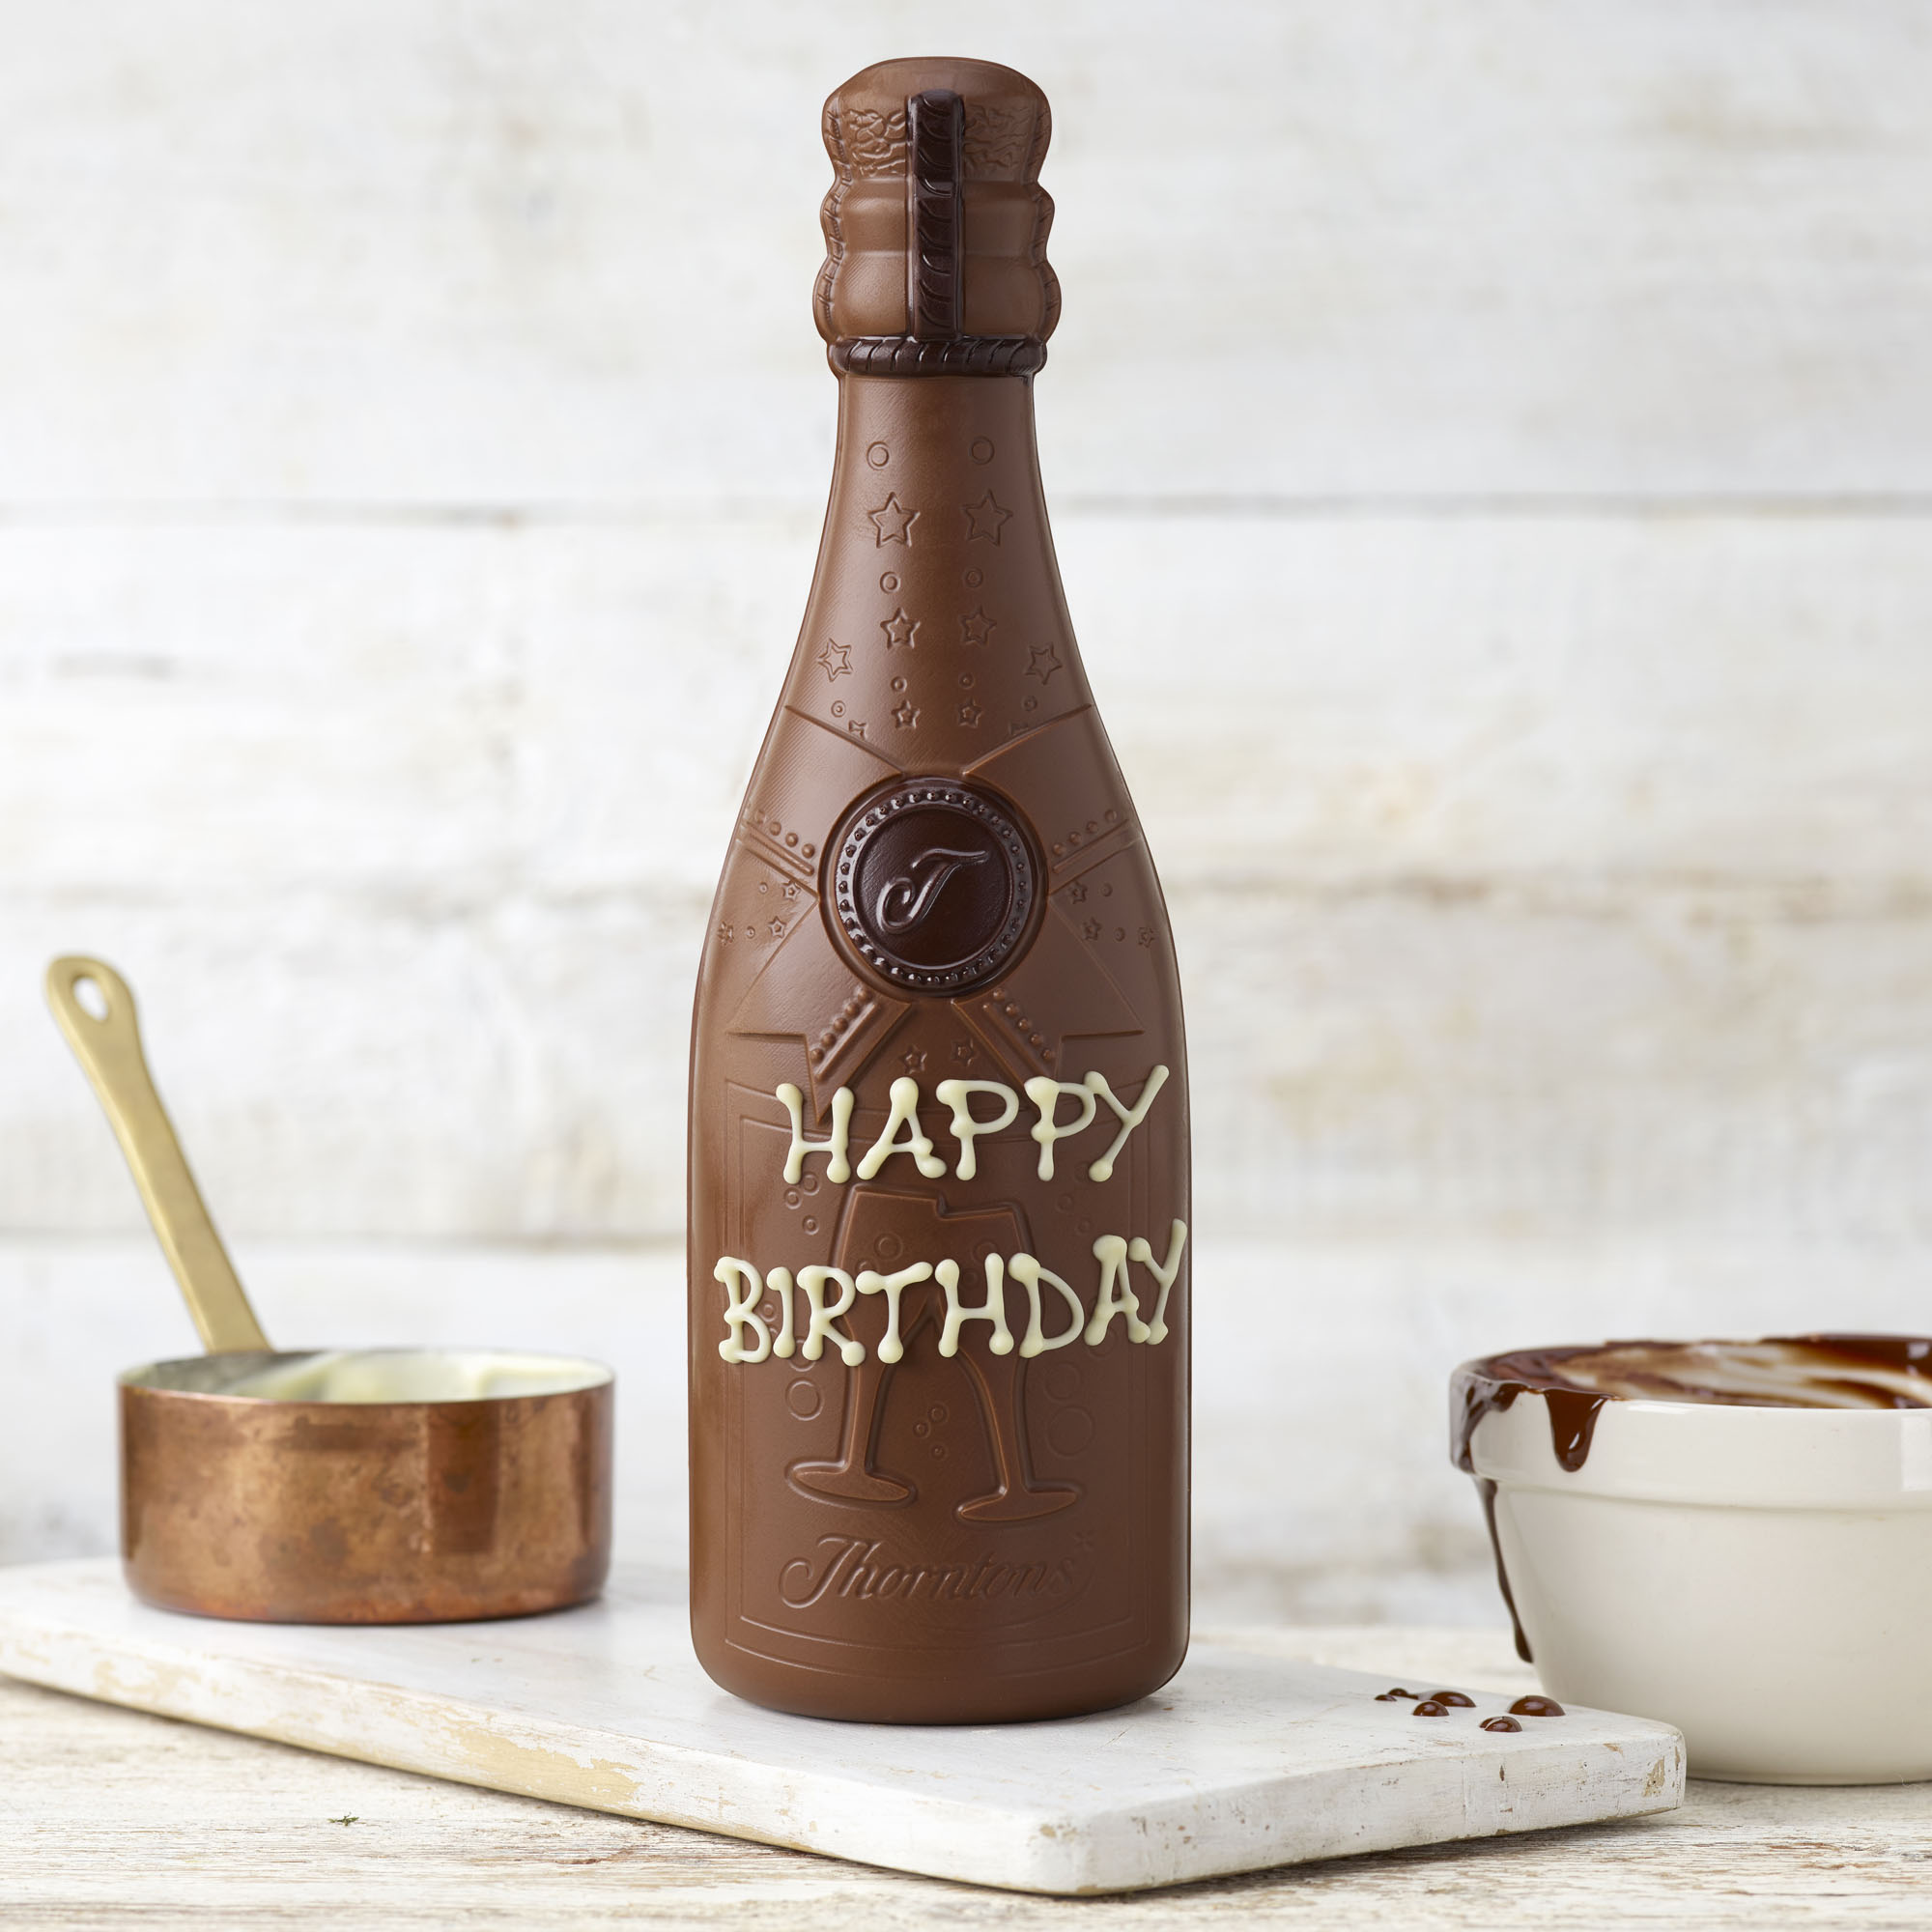 Personalised gifts personalised sweets birthday presents uk personalised gifts personalised sweets birthday presents uk thorntons negle Images